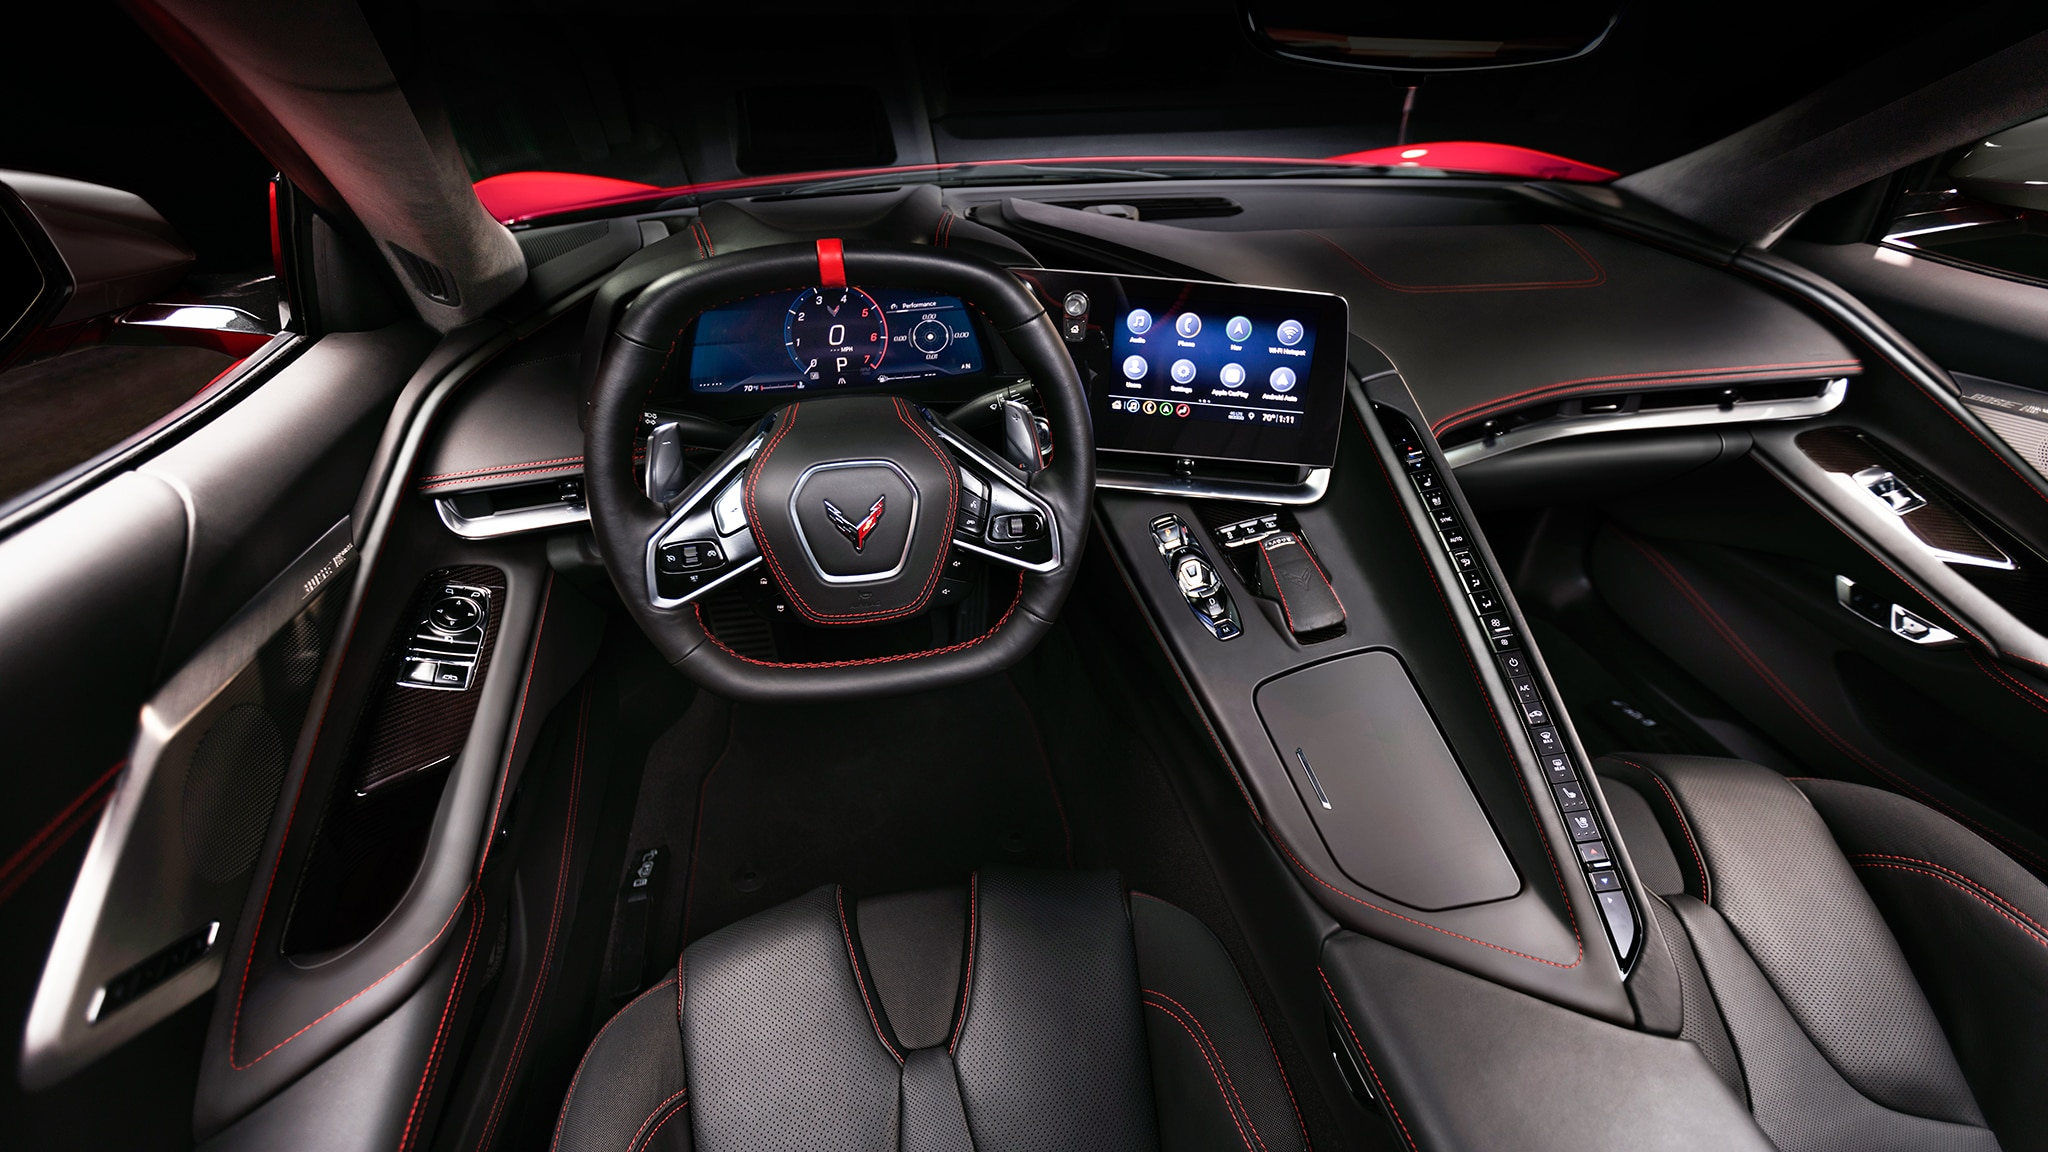 2020 Chevrolet Corvette C8 Offers 12 Paint Colors & 6 Interiors | Automobile Magazine